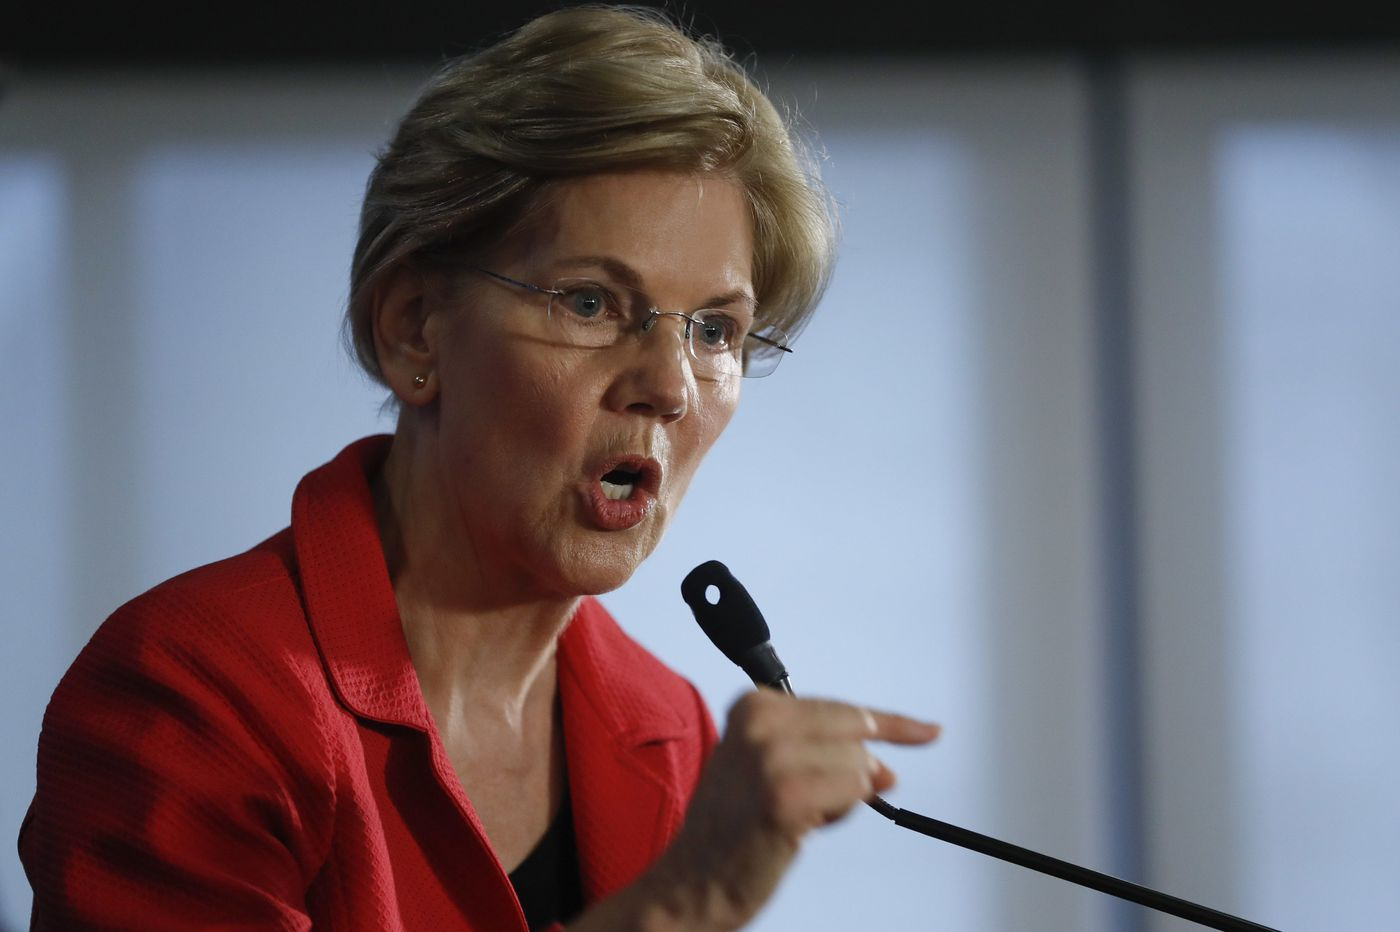 Elizabeth Warren gave the wrong answer to Tibbetts murder question | Opinion